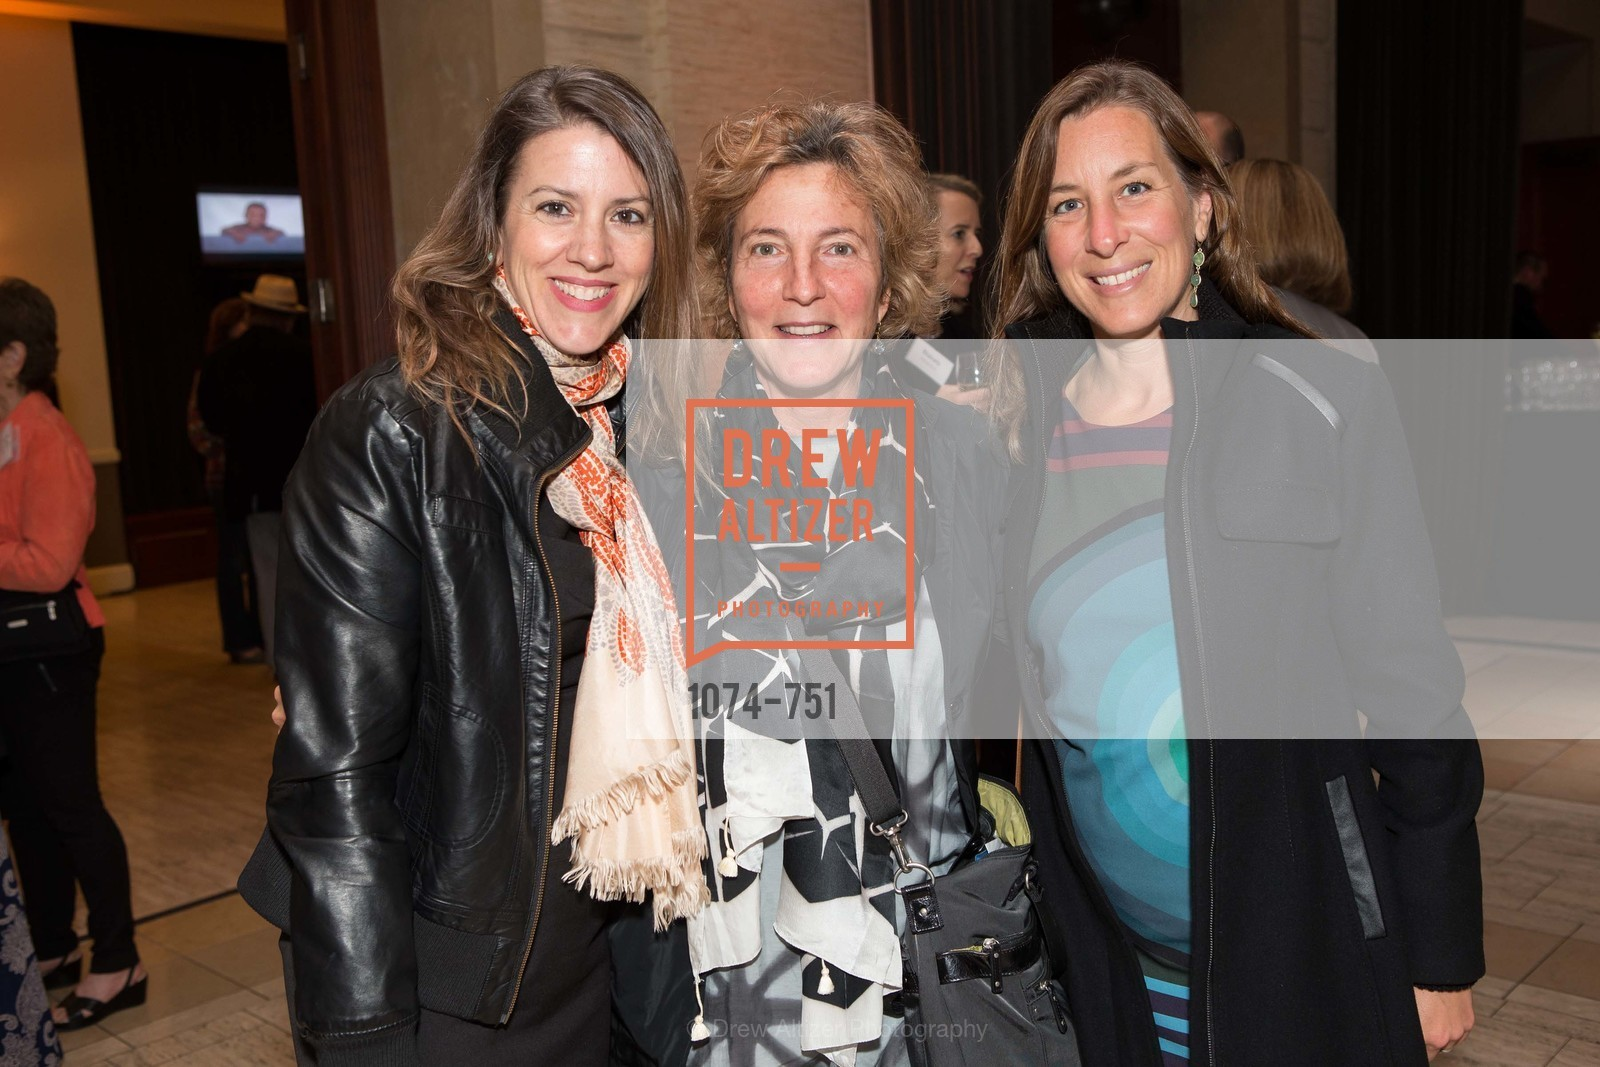 Anna Lappe, Diana Cohn, Lia Gaertner, CENTER FOR ENVIRONMENTAL HEALTH (CEH) 2015 Gala, Bently Reserve, May 28th, 2015,Drew Altizer, Drew Altizer Photography, full-service agency, private events, San Francisco photographer, photographer california